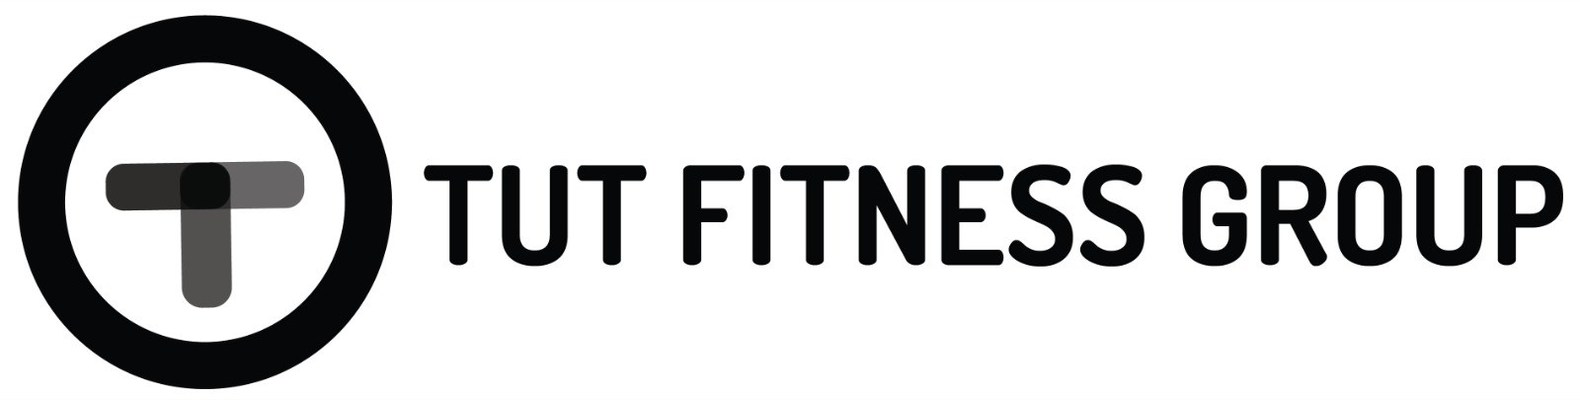 TUT Fitness Group And CENTRED Sign Global Partnership Agreement To Promote TUT Exercise Equipment to Private Marketplace of 57 Million Health & Wellness Consumers (CNW Group/TUT Fitness Group Limited)